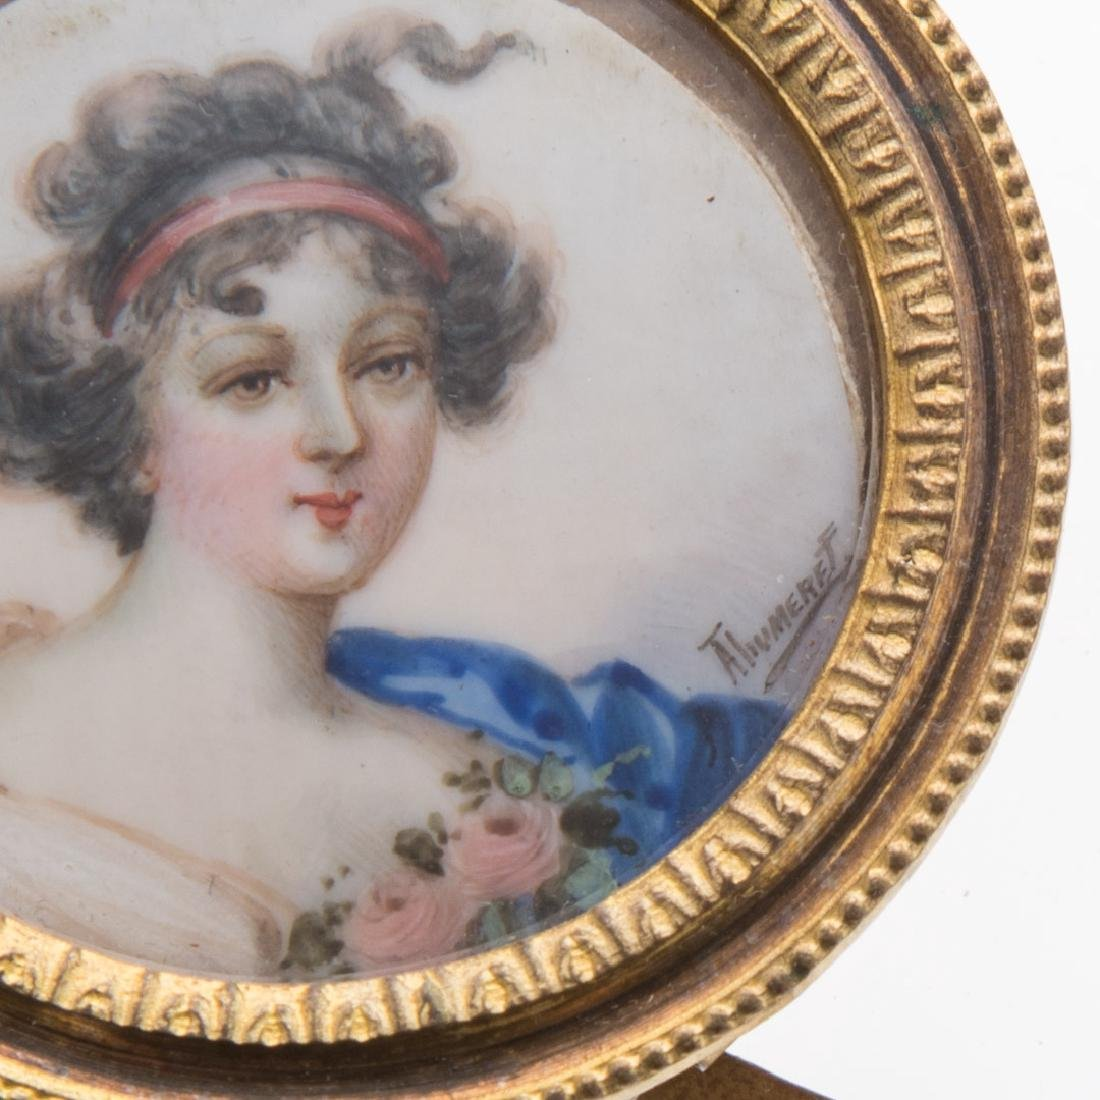 French School 19th century portrait miniature - 2